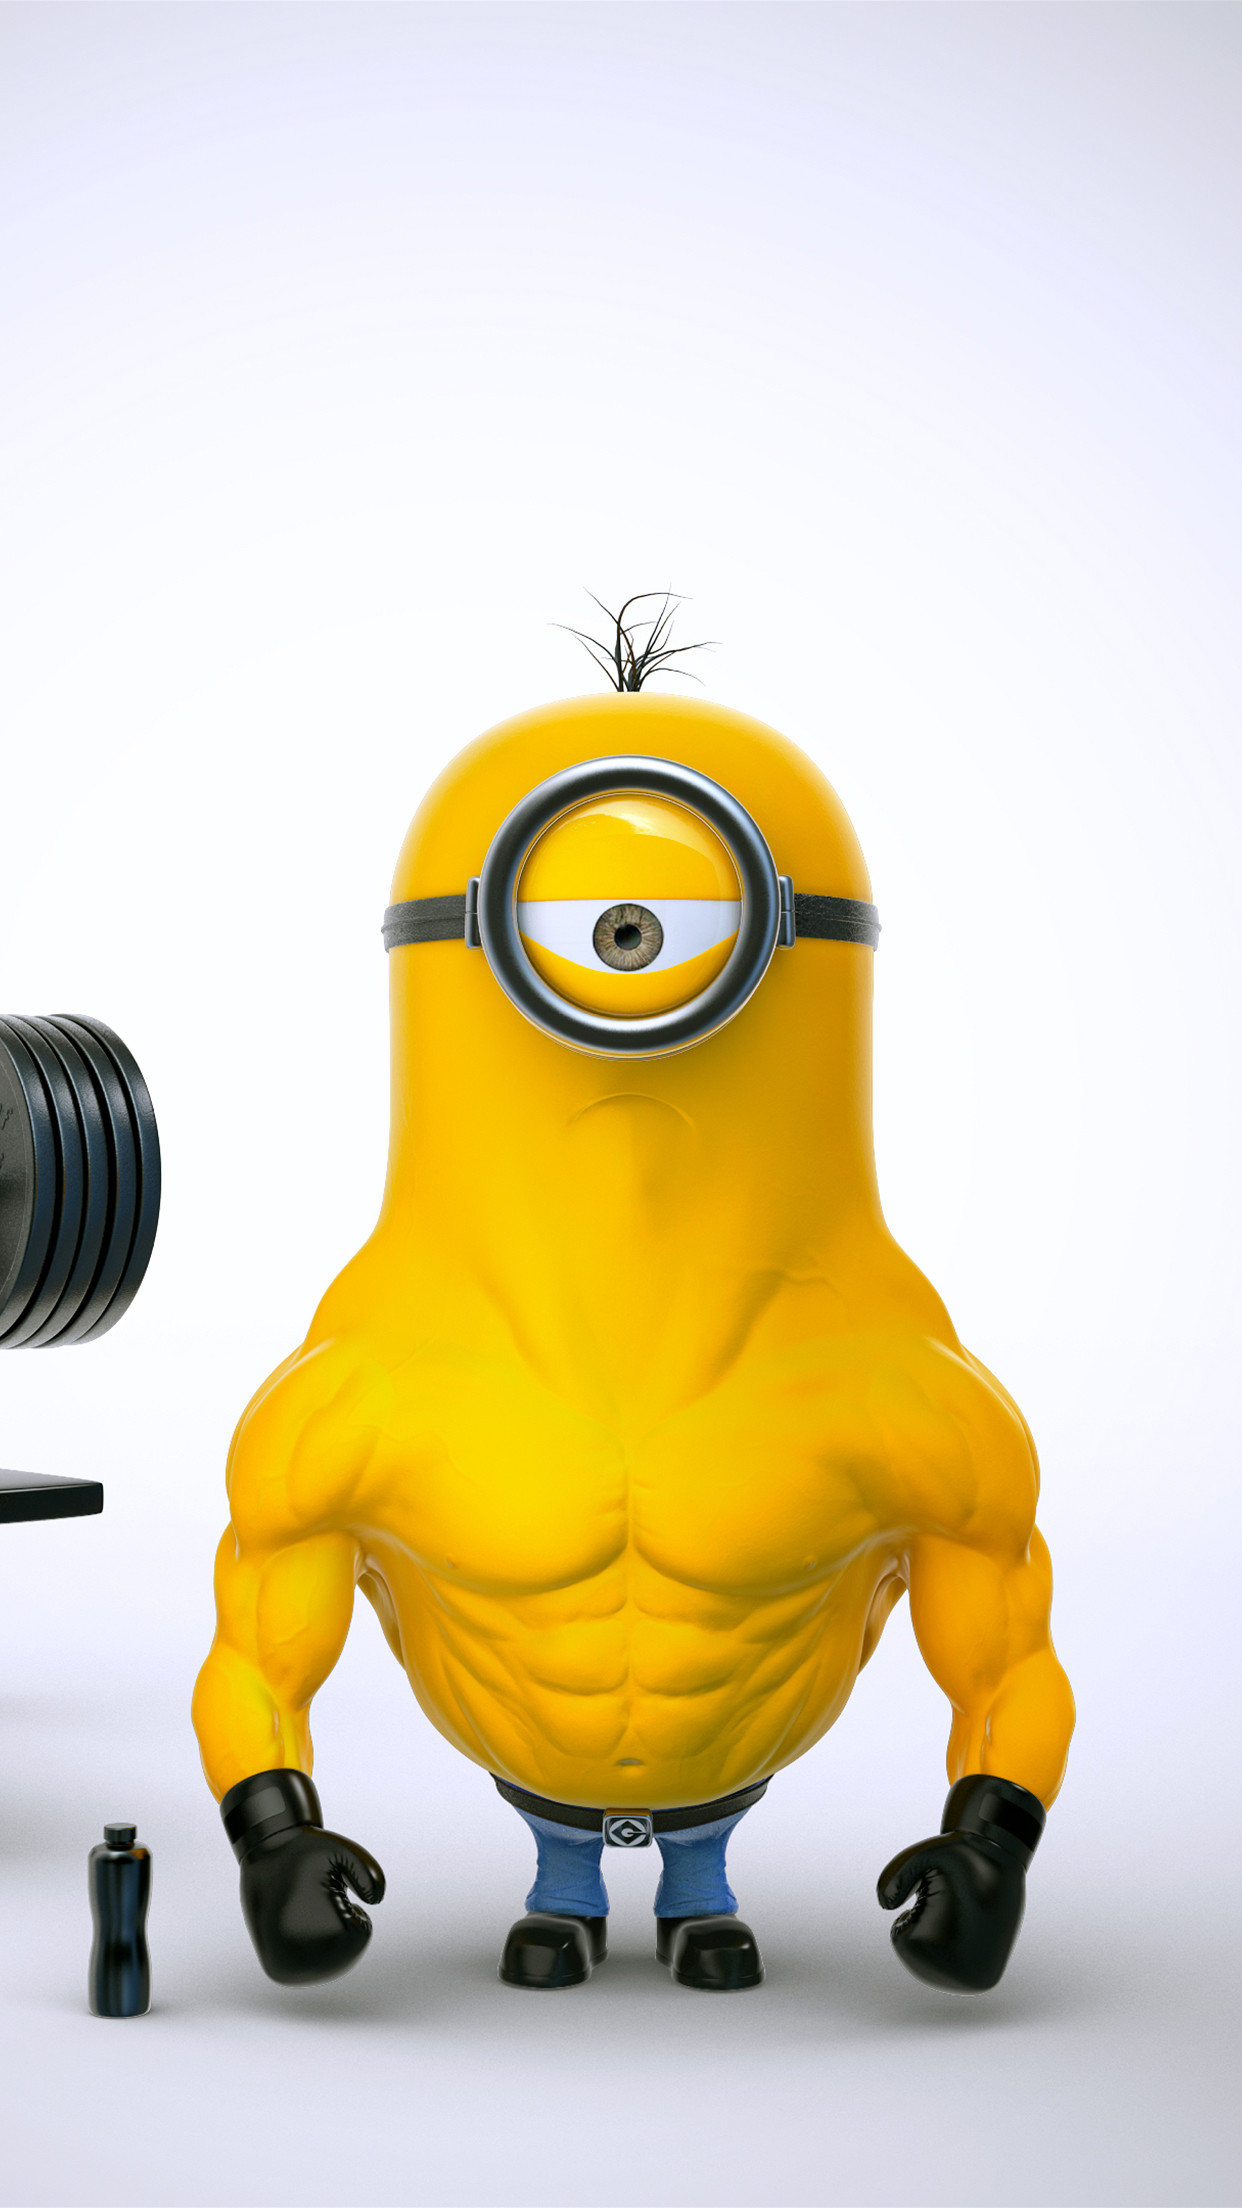 Minion-Muscle-iPhone-3Wallpapers-Parallax